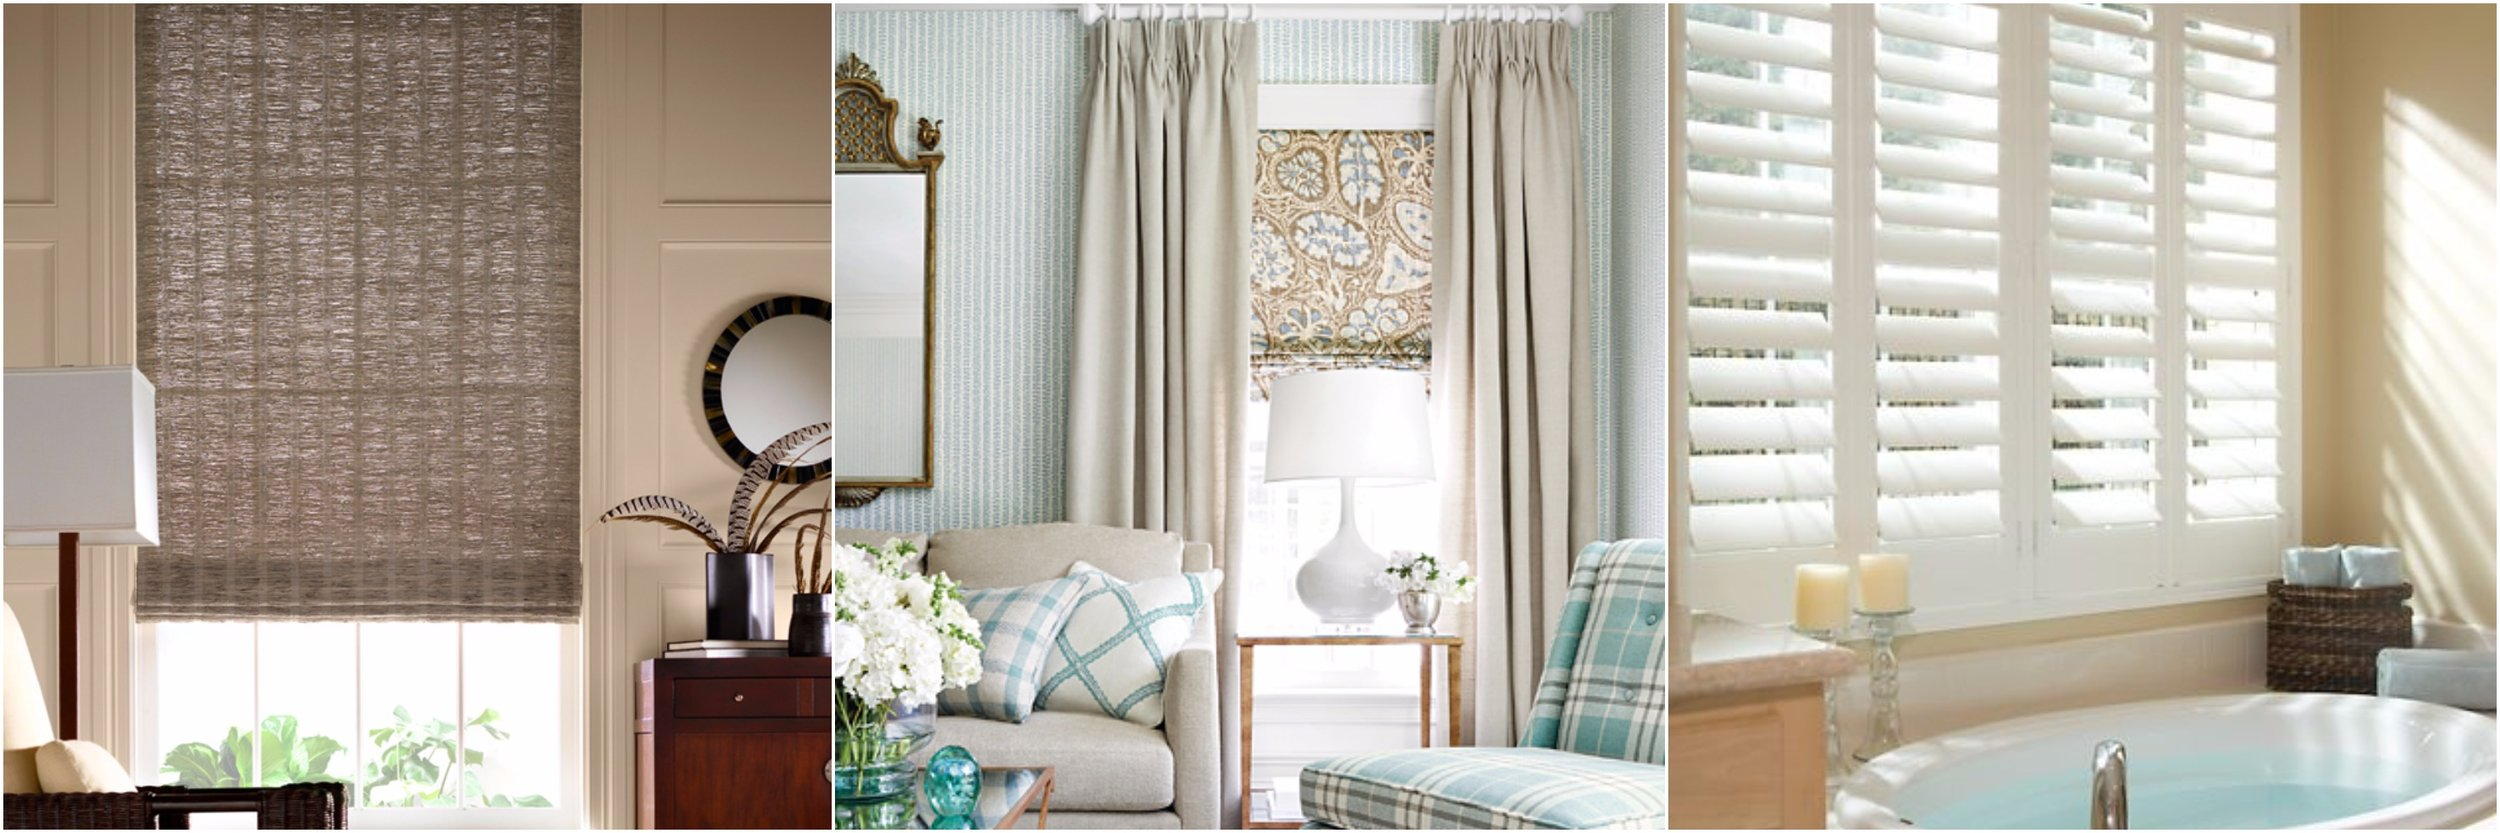 Window Treatments3.jpg